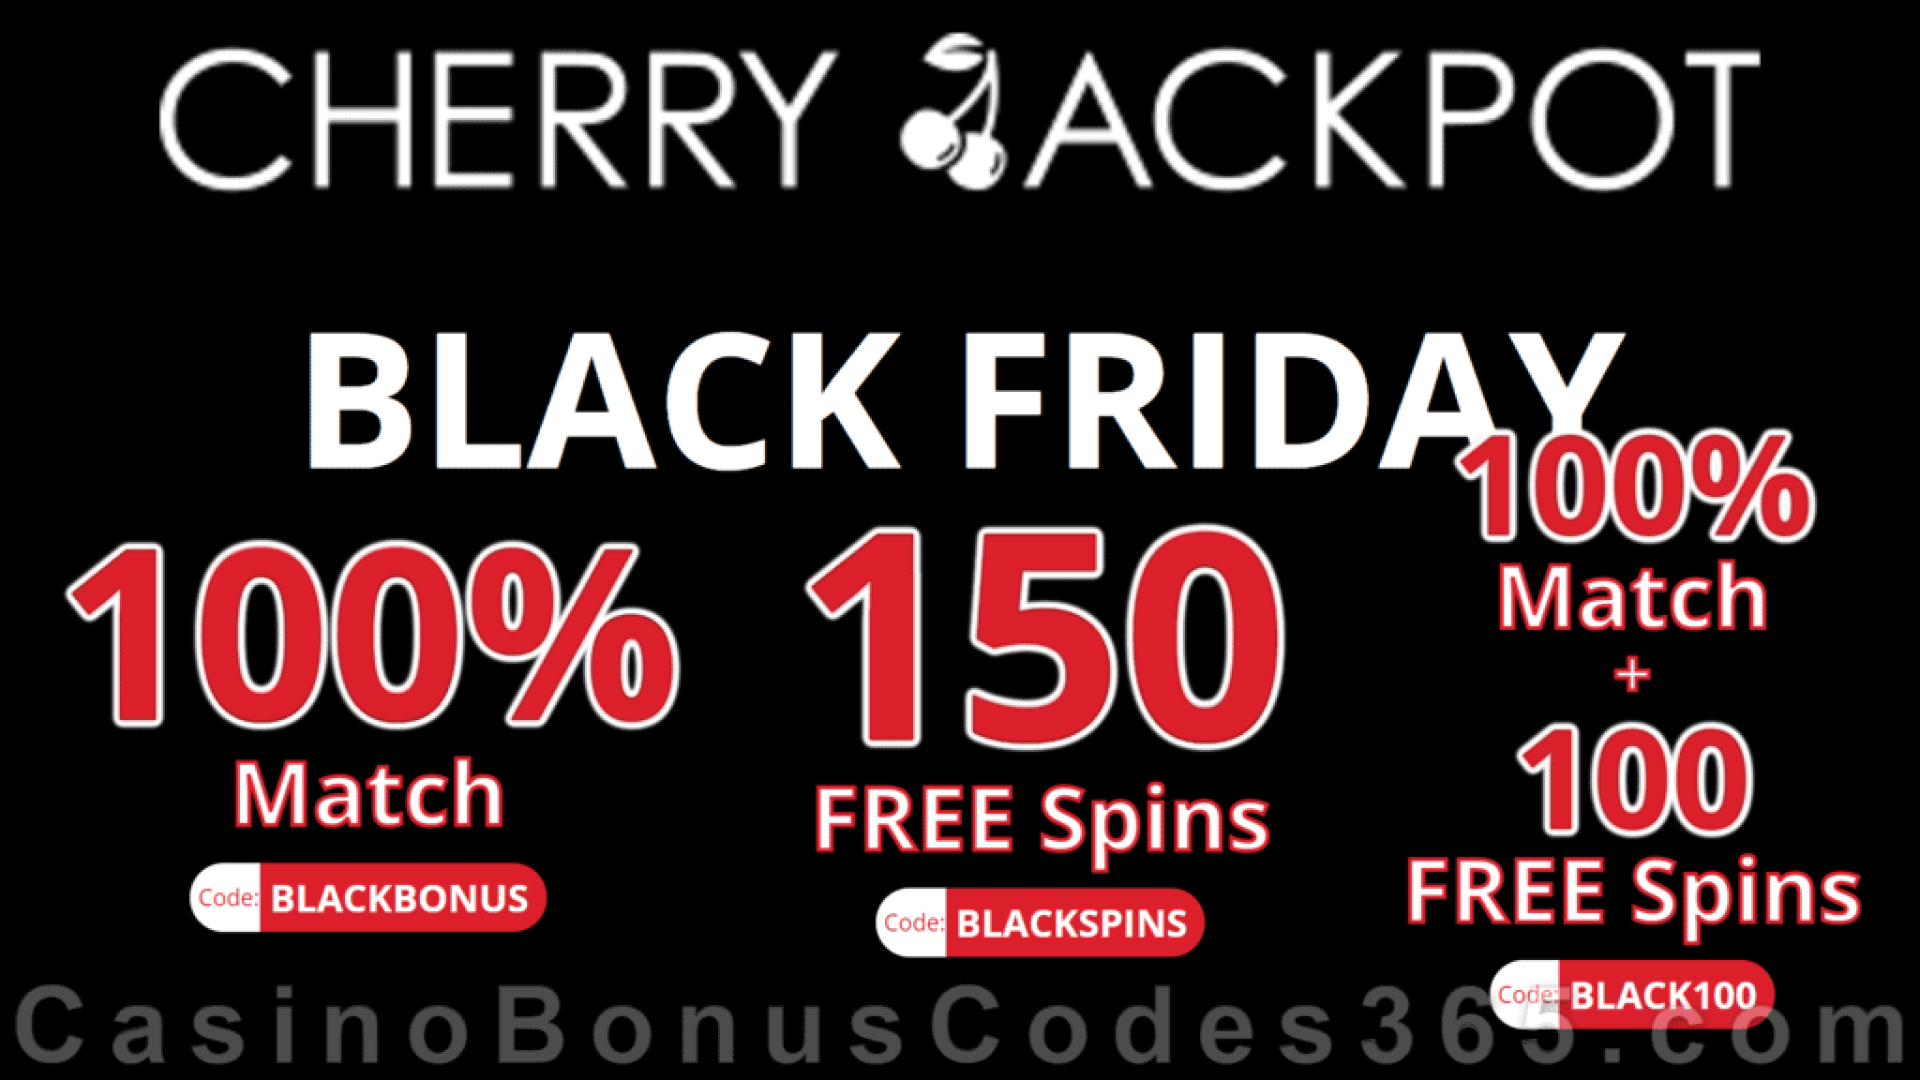 Cherry Jackpot Casino Codes